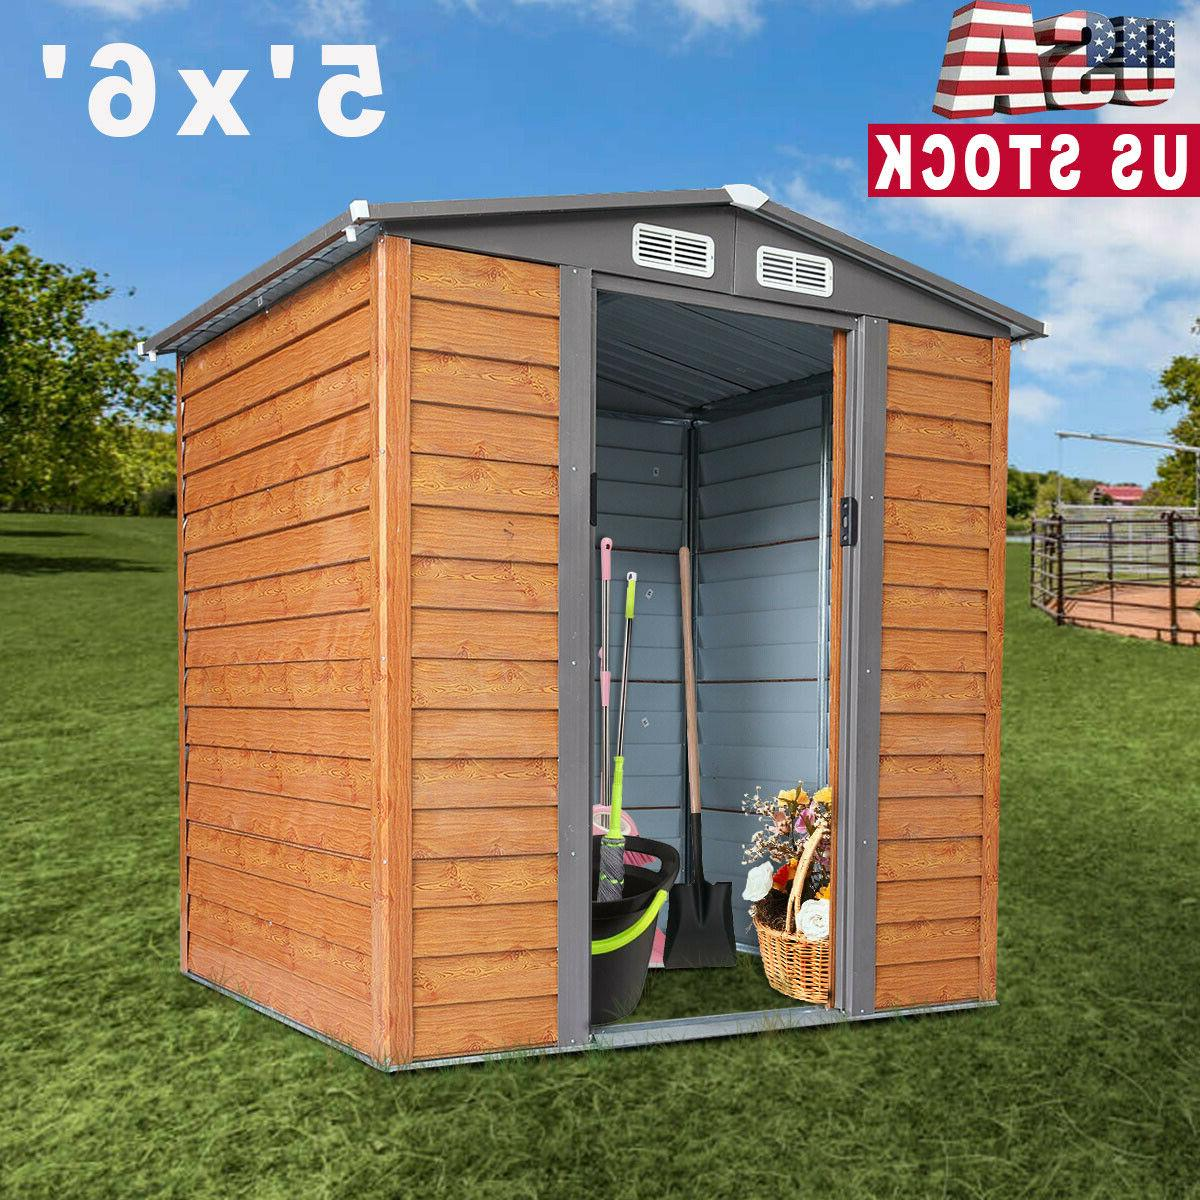 5x6 ft outdoor garden storage shed tool